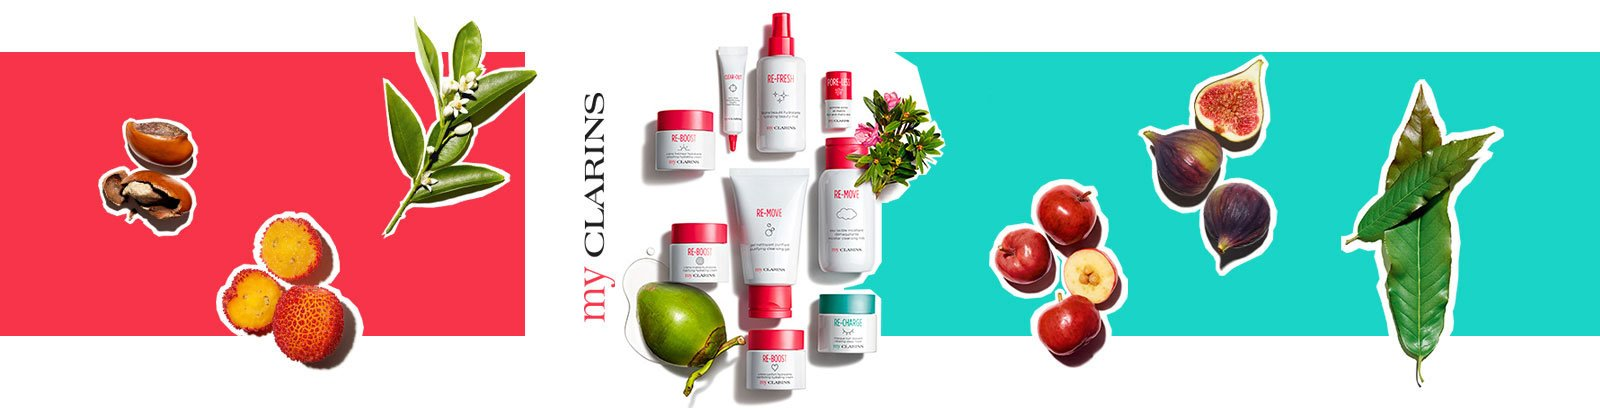 Introducing My Clarins: My Detoxifying & Nourishing Skincare. The perfect balance of plant & fruit extracts for healthy-looking skin.